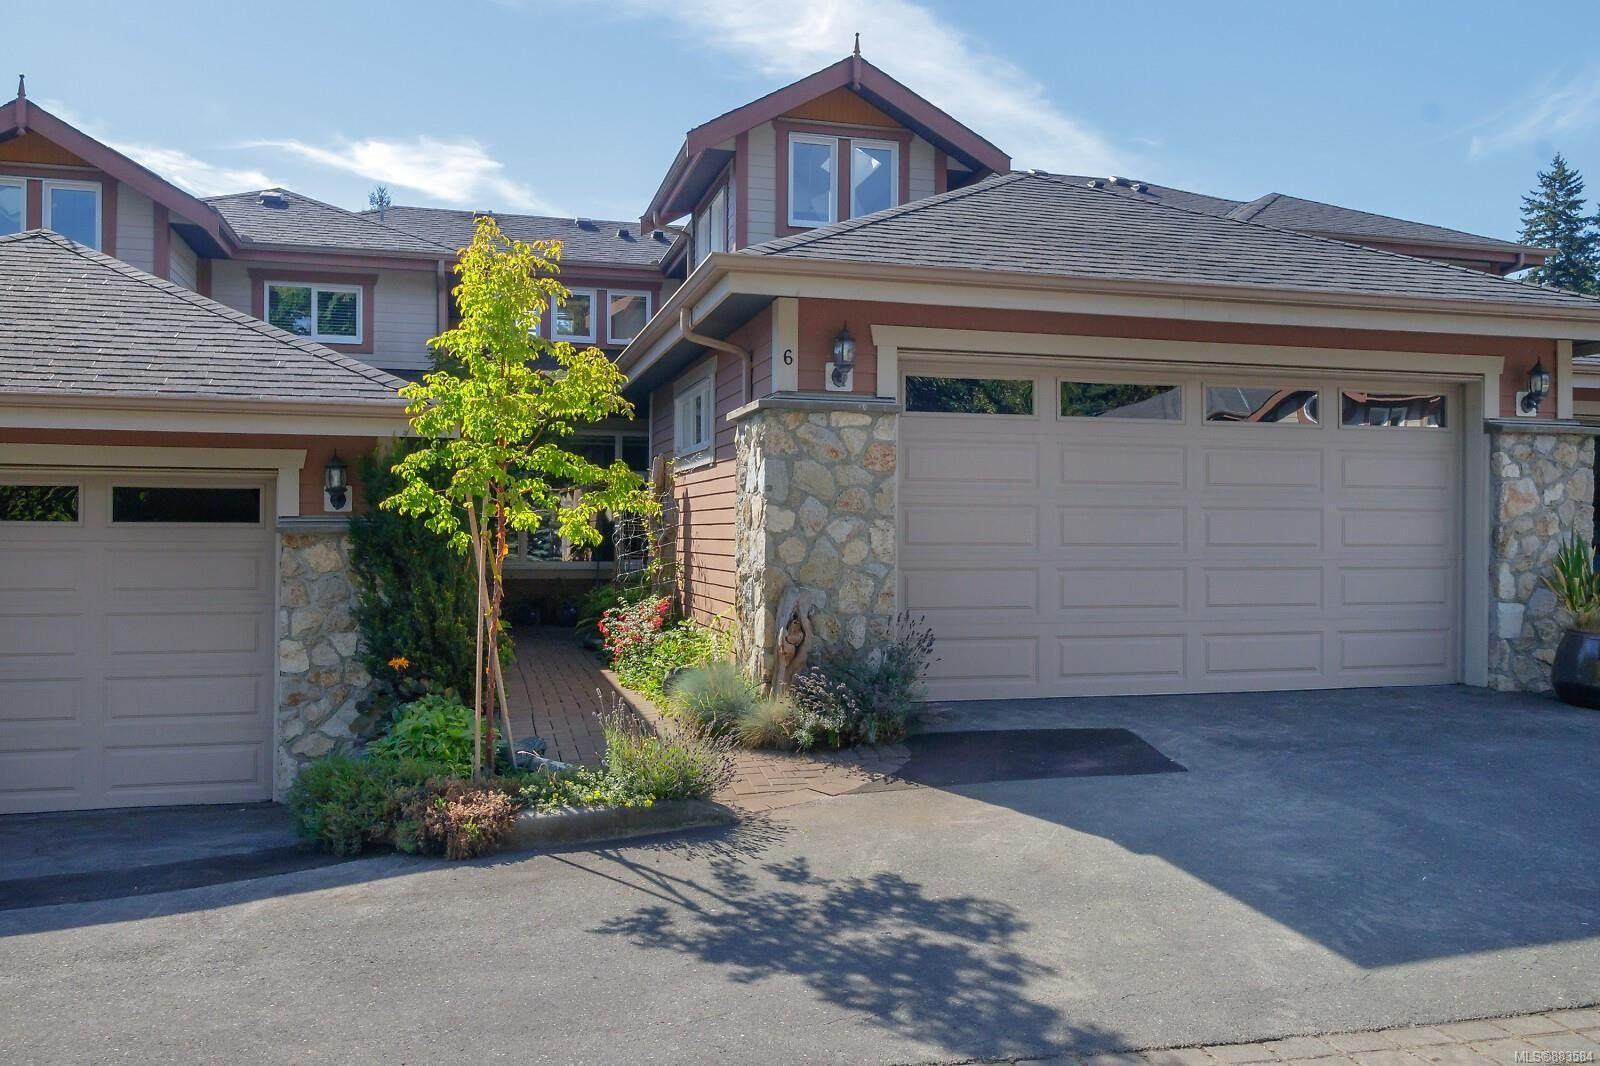 Main Photo: 6 974 Sutcliffe Rd in : SE Cordova Bay Row/Townhouse for sale (Saanich East)  : MLS®# 883584